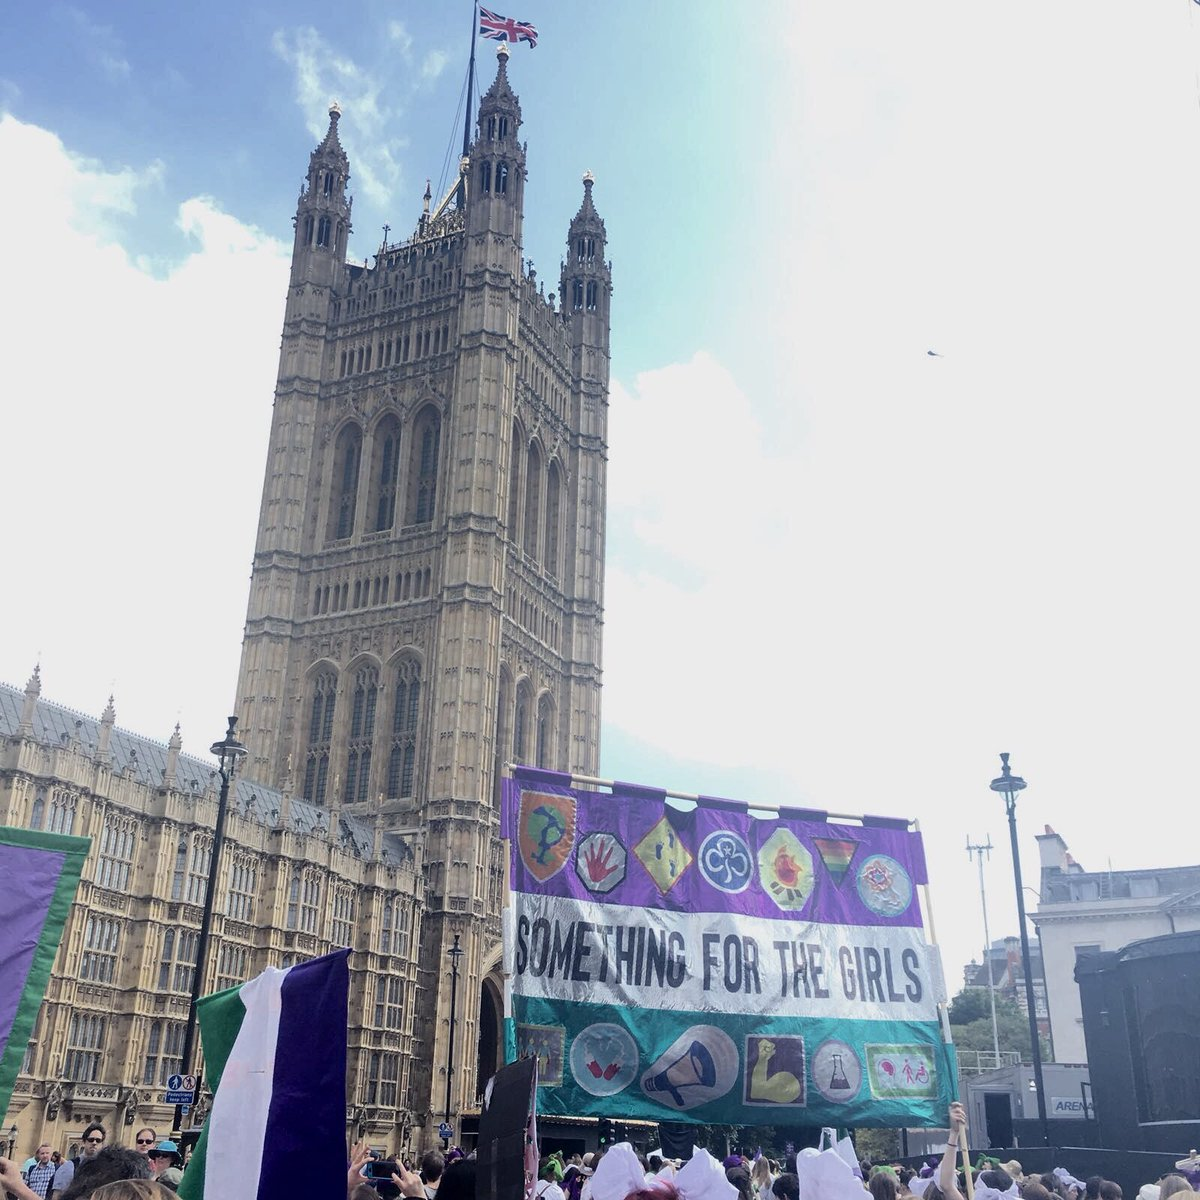 "V proud to be involved in @processions2018 I collab'd w @Girlguiding Youth Advocates, creating banner w patches representing issues they feel strongly about! ""Something for the girls"", harks back to original girlguide demands,after storming a (boys only) Boy Scout rally! @1418NOW https://t.co/HE39yFh3h2"